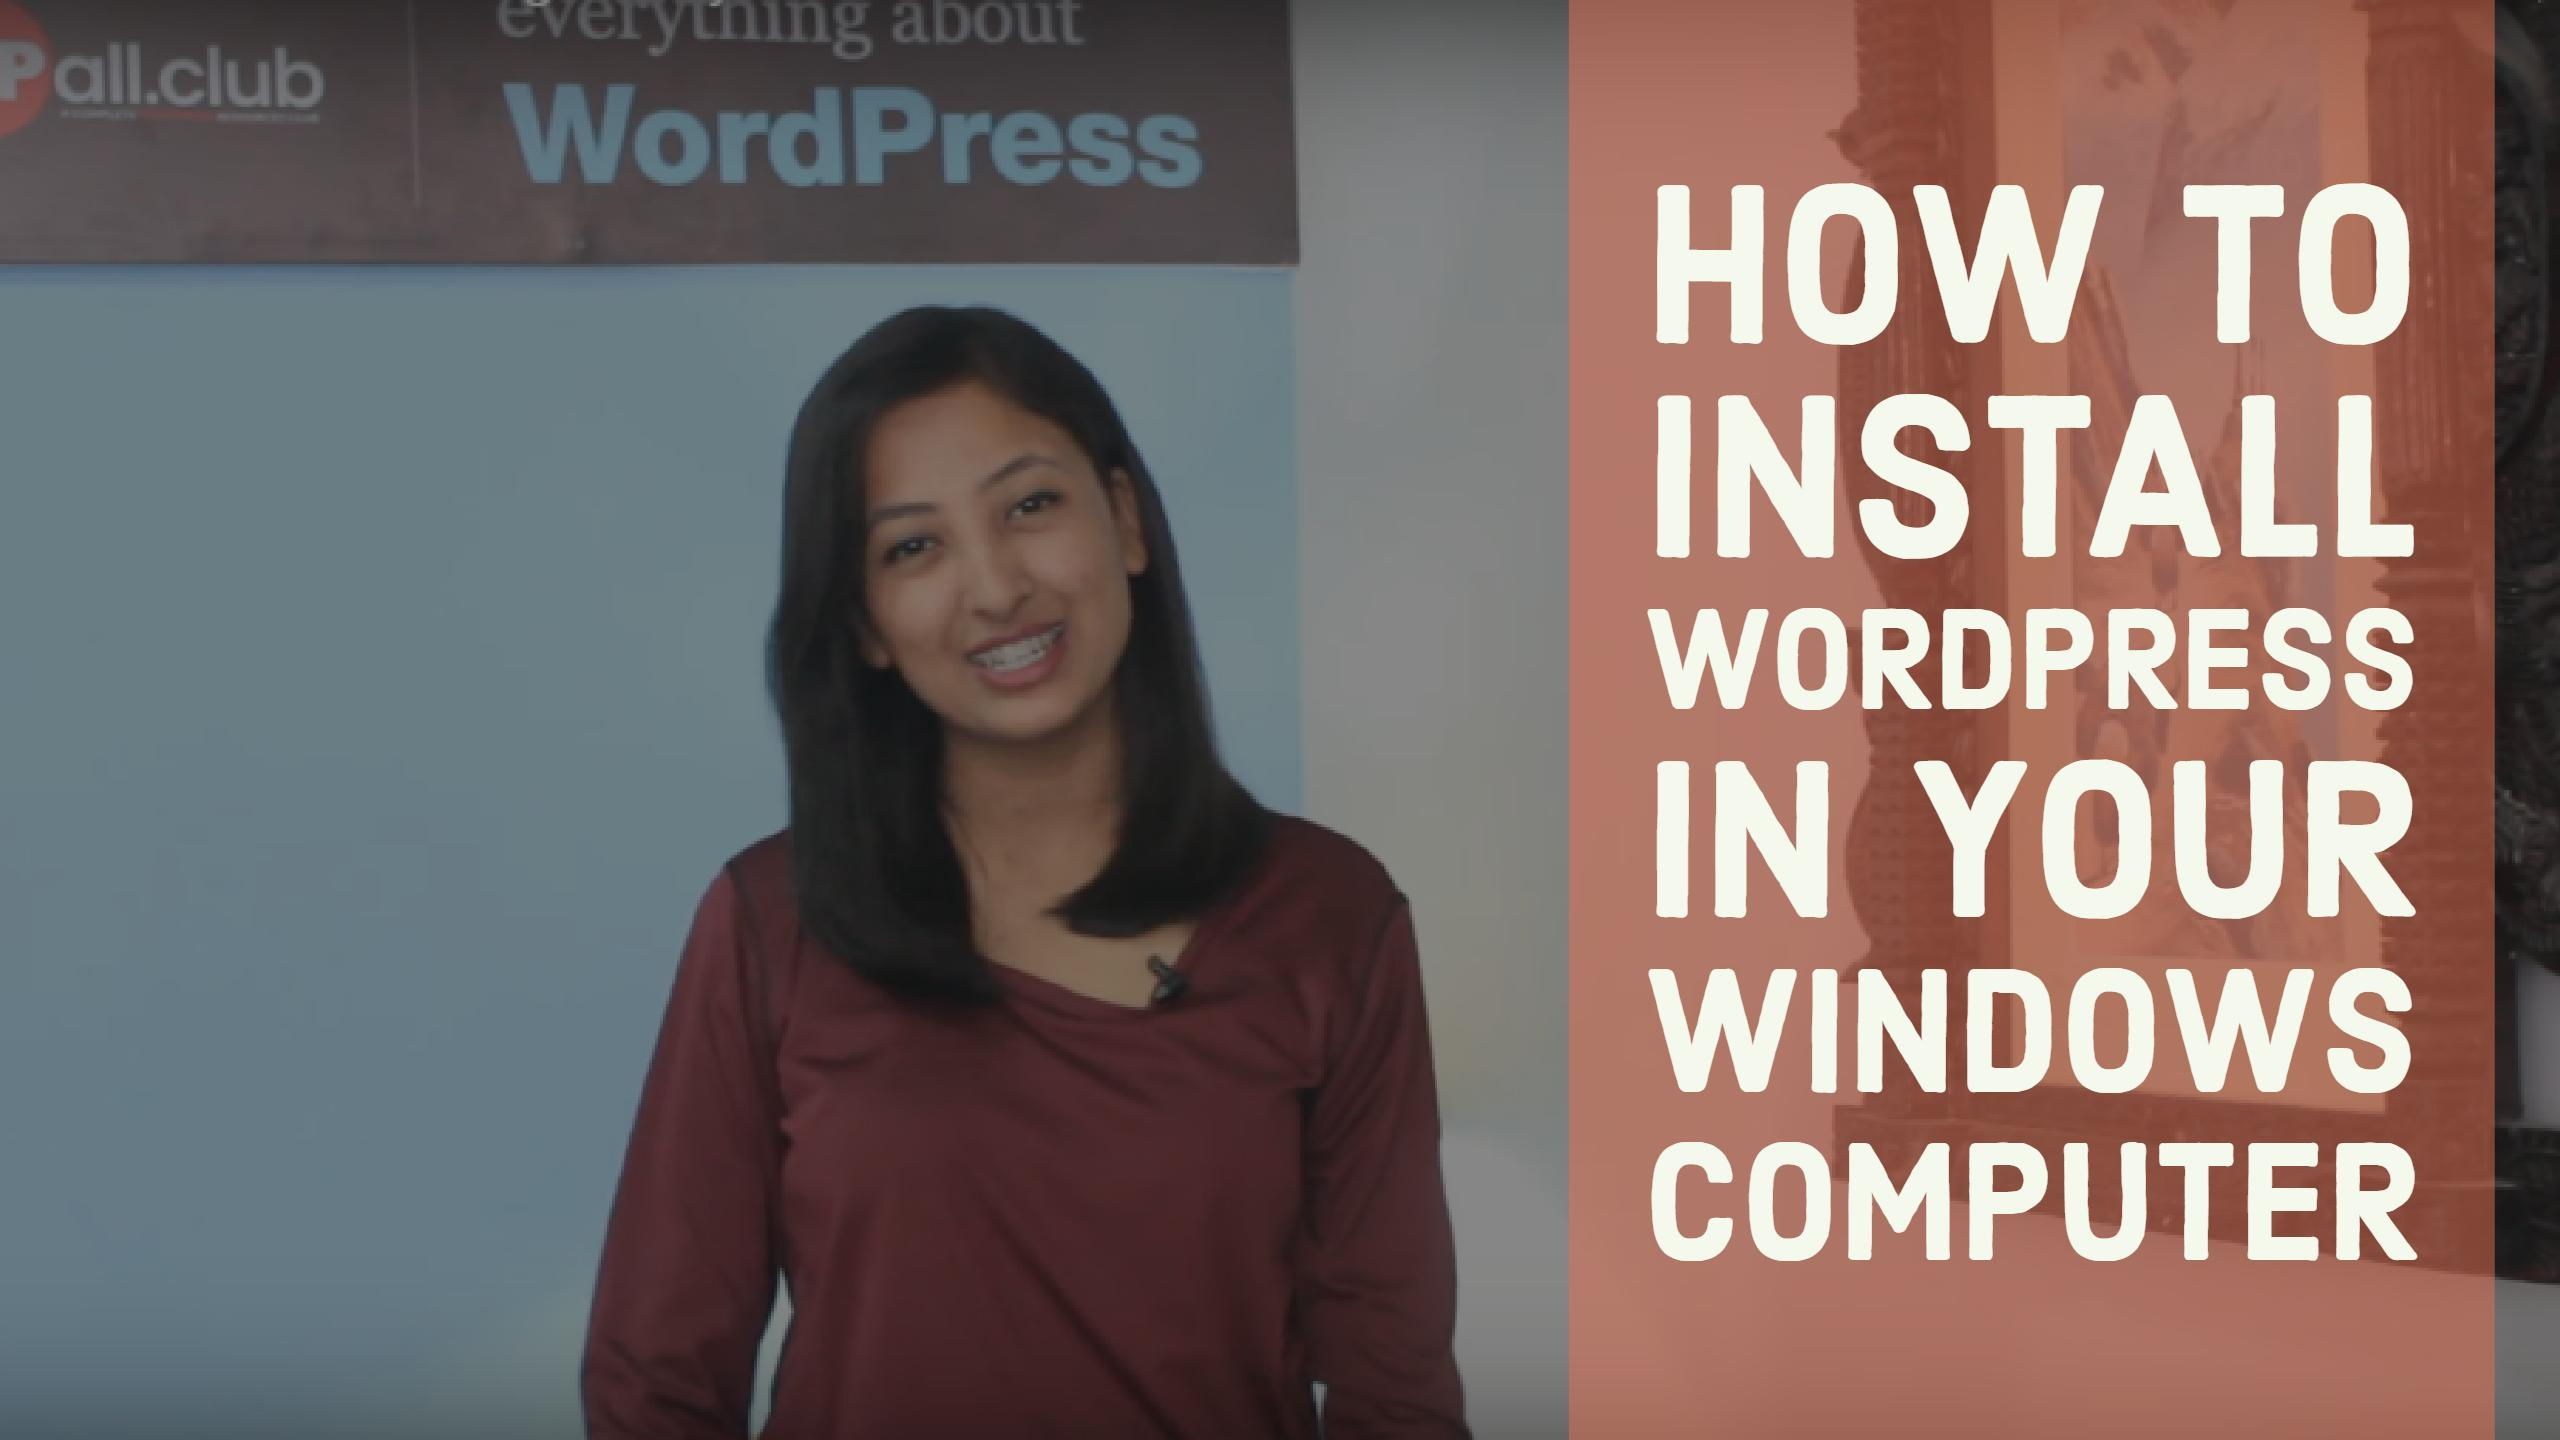 How to install WordPress in your windows computer